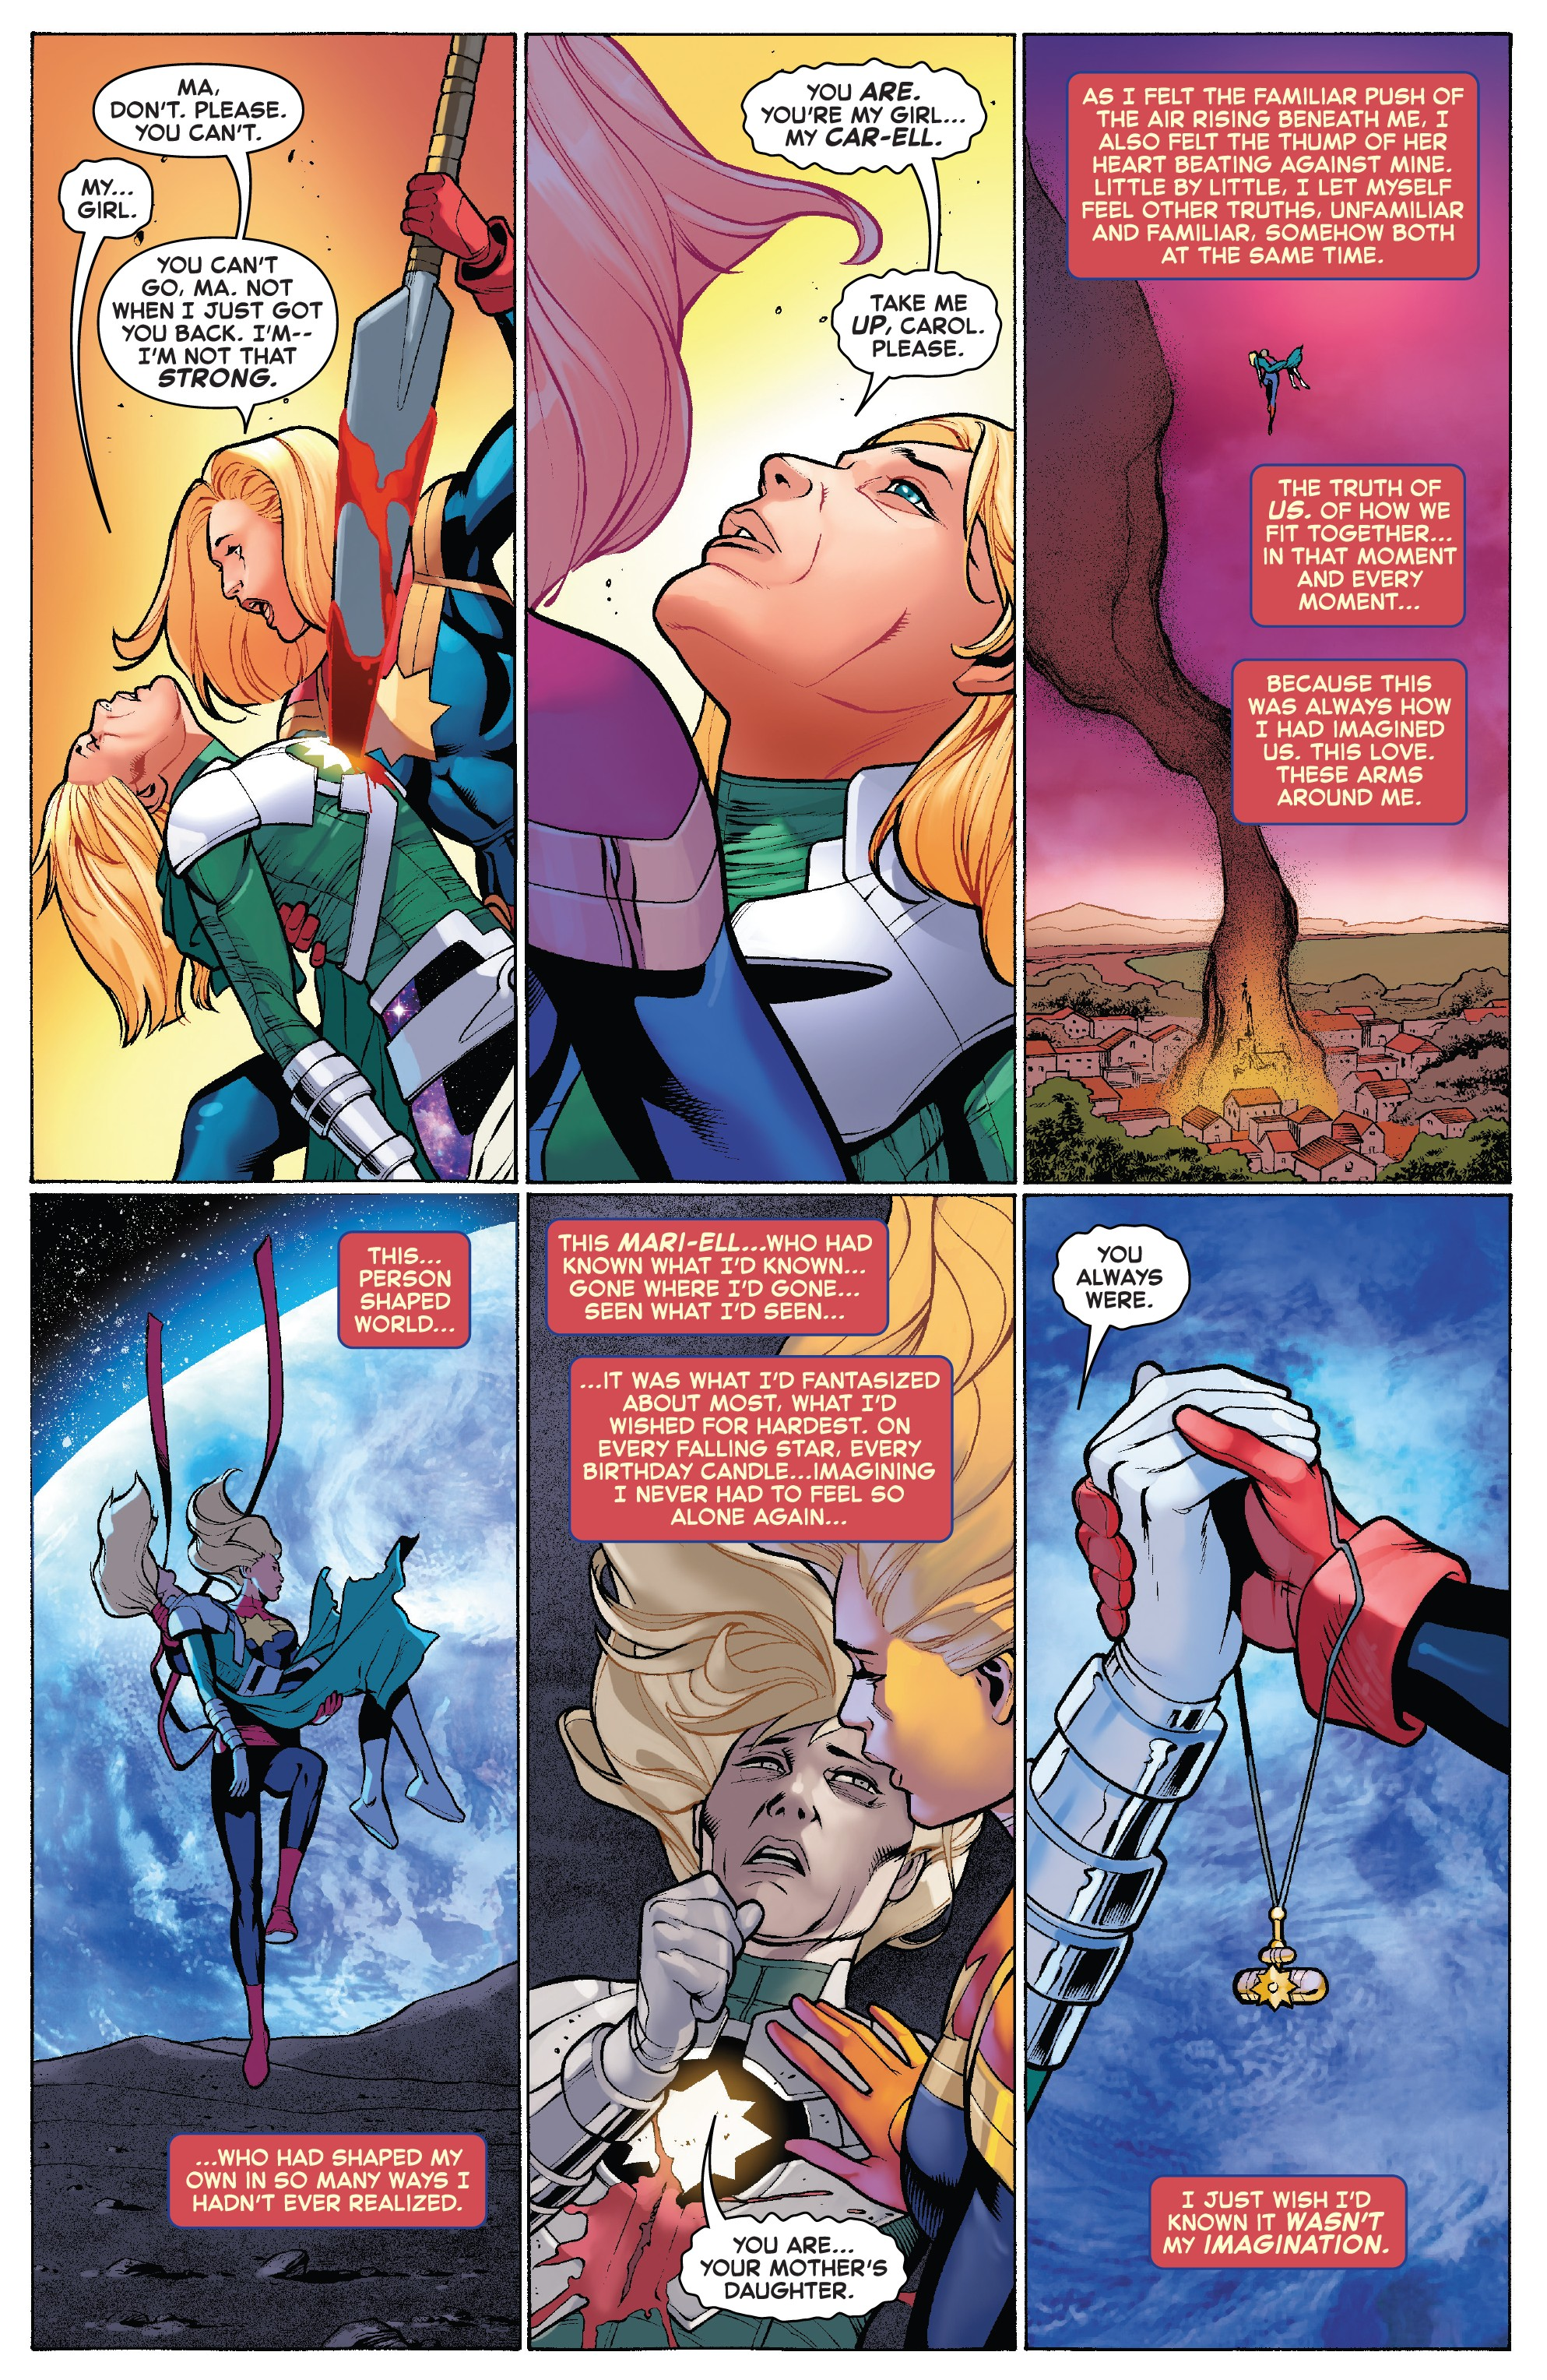 scans_daily | the life of captain marvel #5